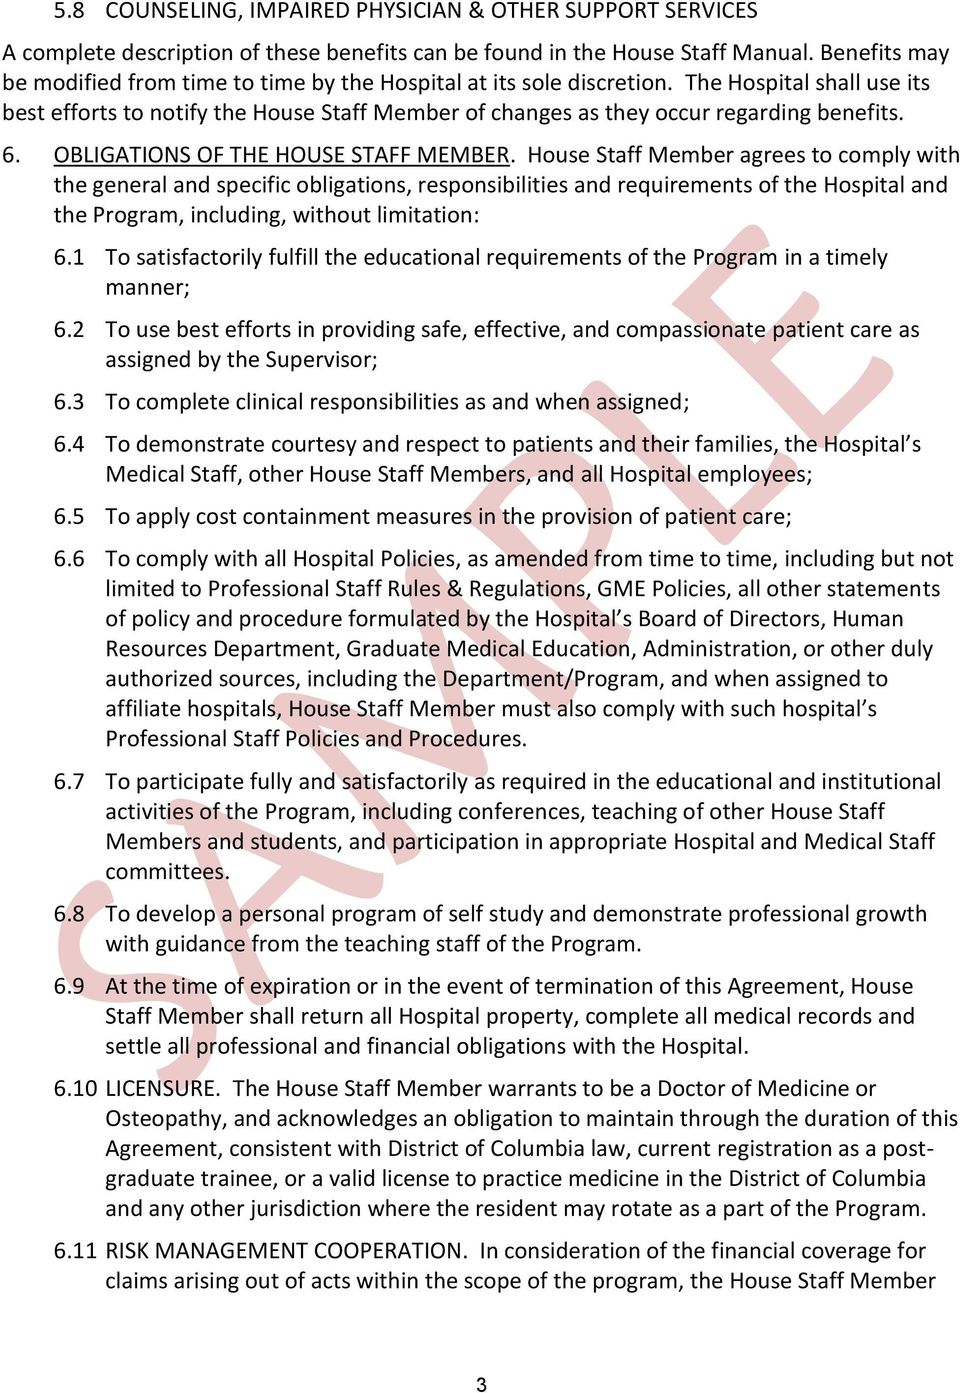 6. OBLIGATIONS OF THE HOUSE STAFF MEMBER.